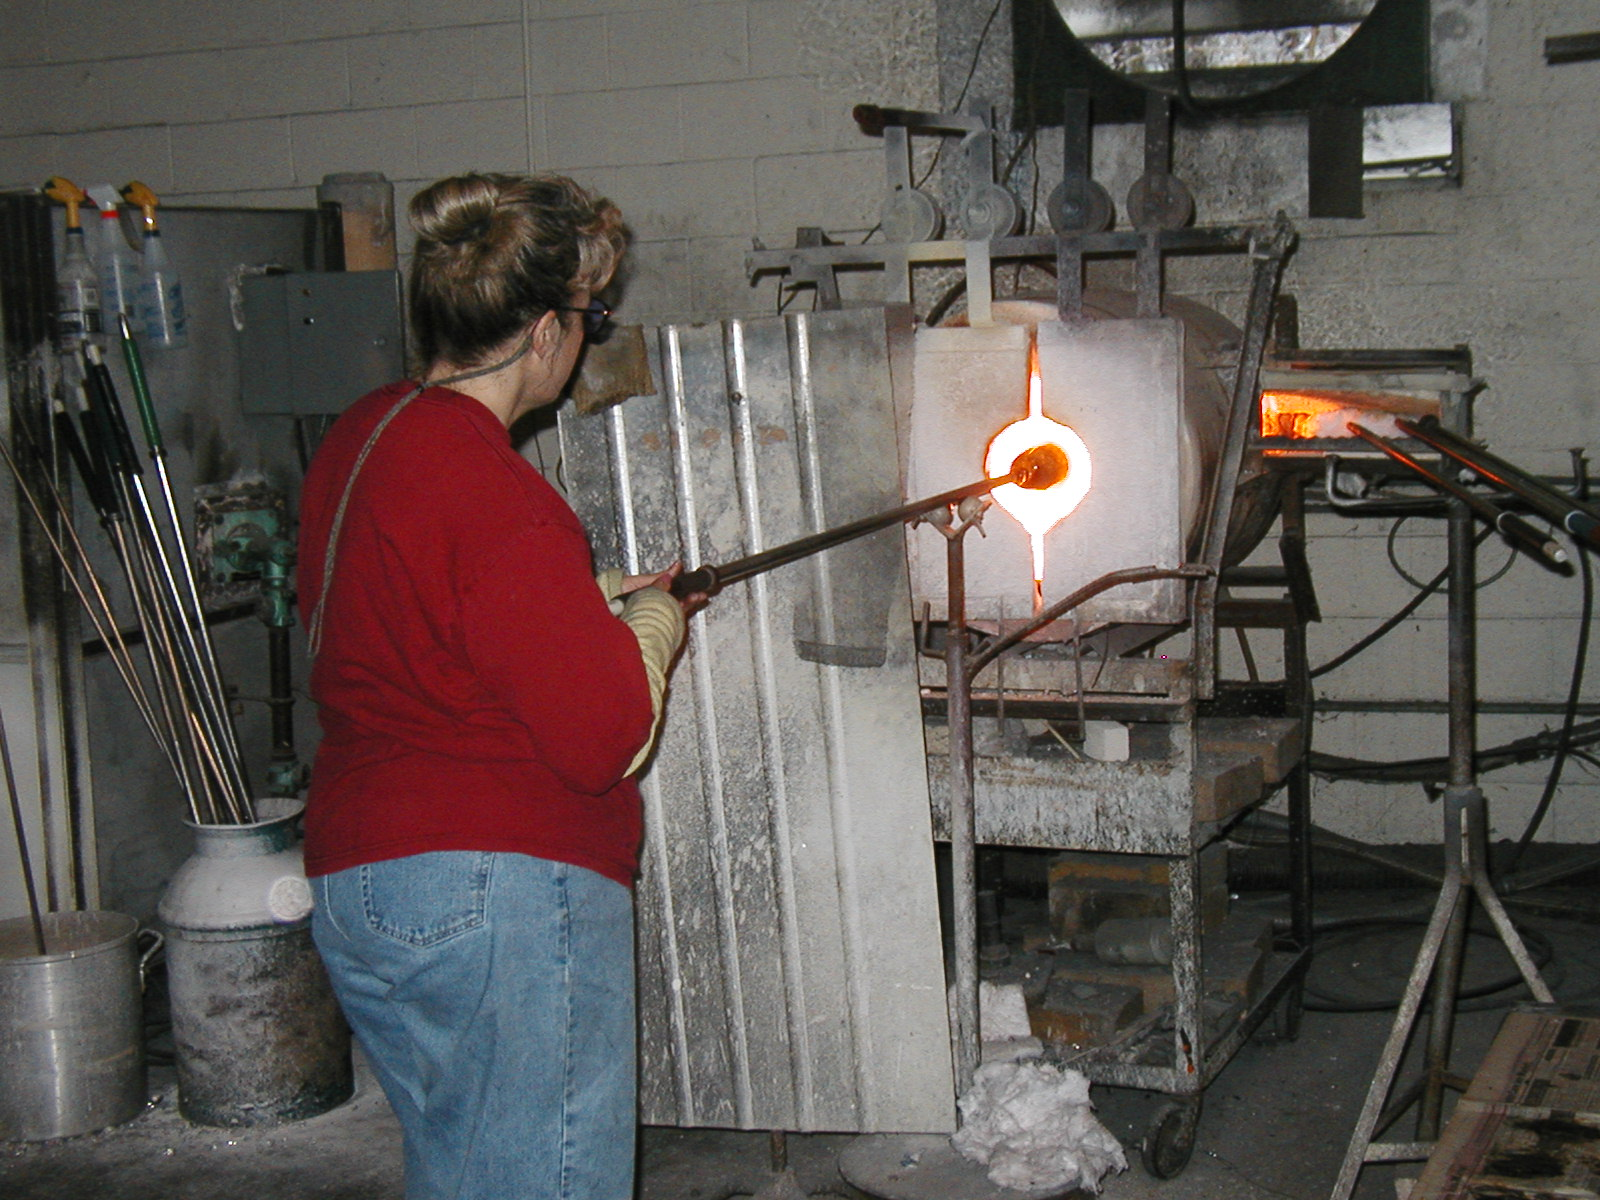 Glassblower.Info - Joel Bless Glasslight Glassblowing class January 18 2004 #148